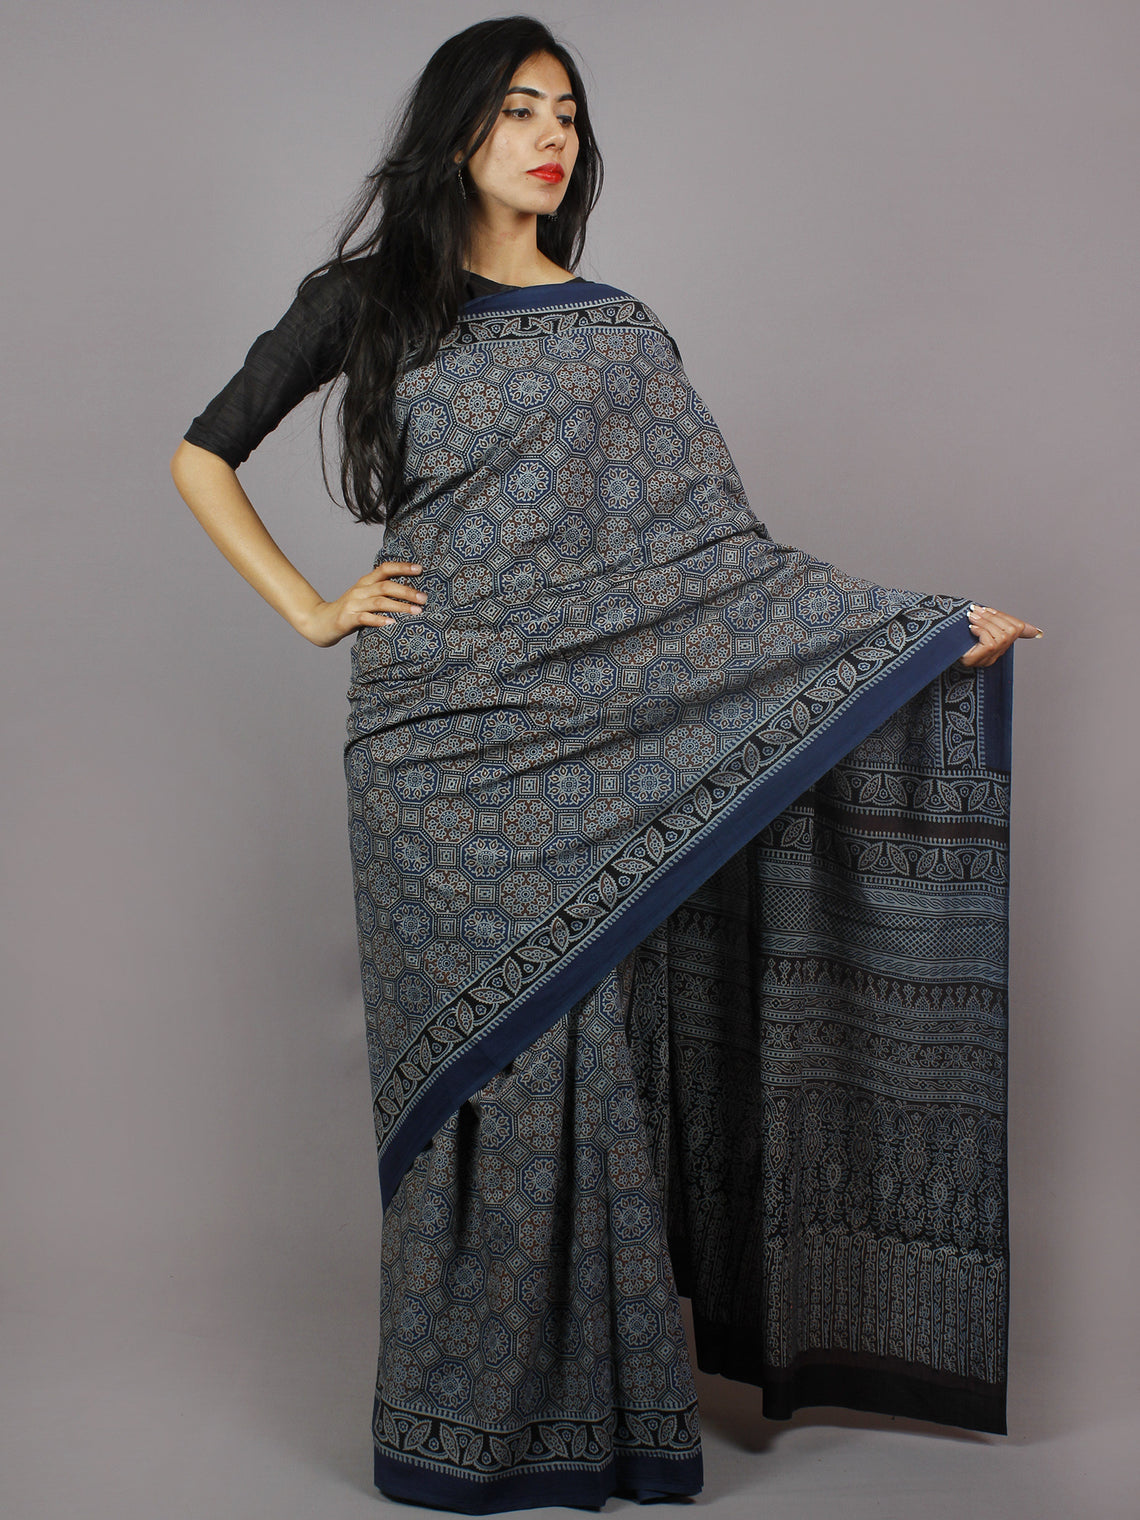 Indigo Maroon Beige Black Mughal Nakashi Ajrakh Hand Block Printed in Natural Vegetable Colors Cotton Mul Saree - S031701271